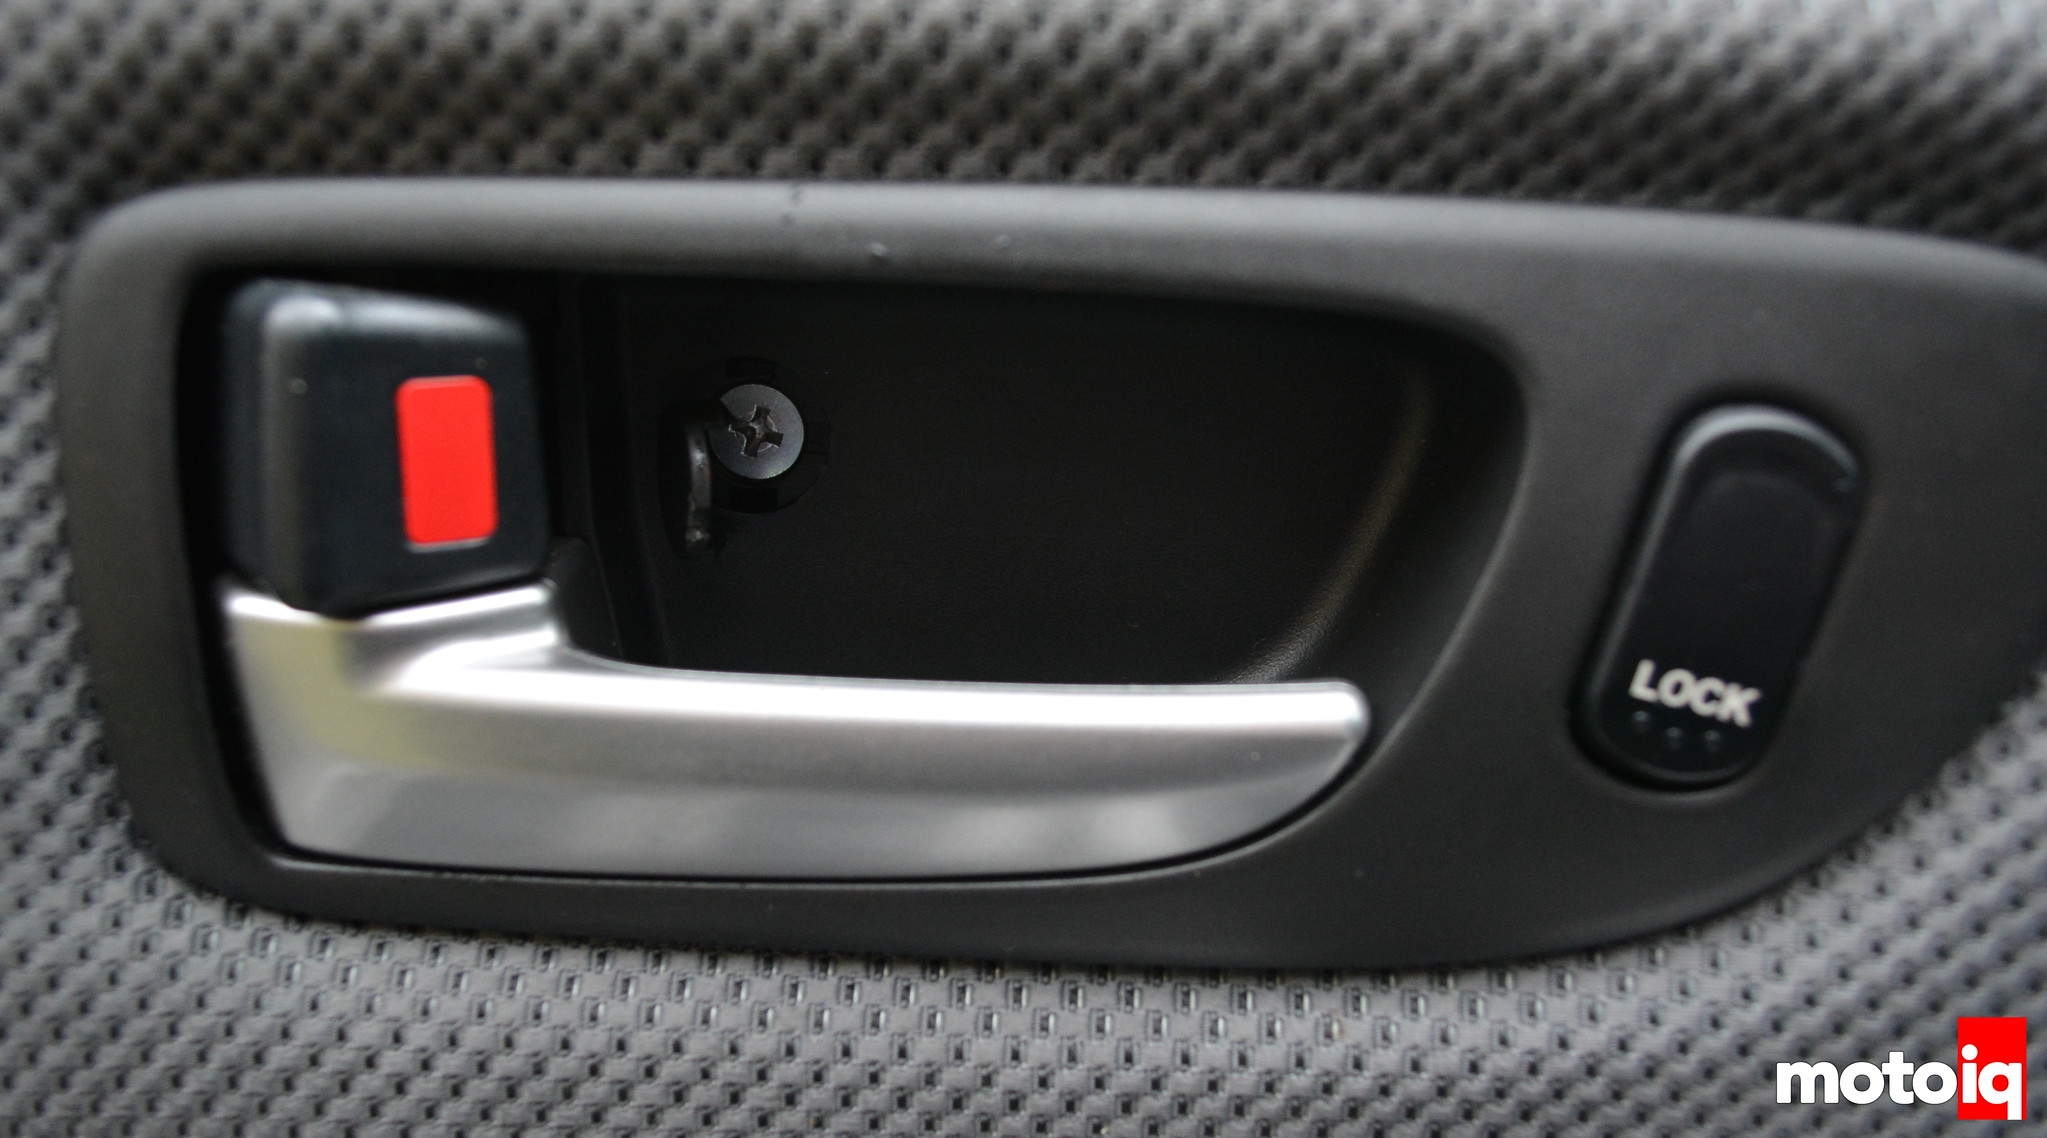 Tech Tip: How to Fix a Broken Mazda Door Handle - MotoIQ